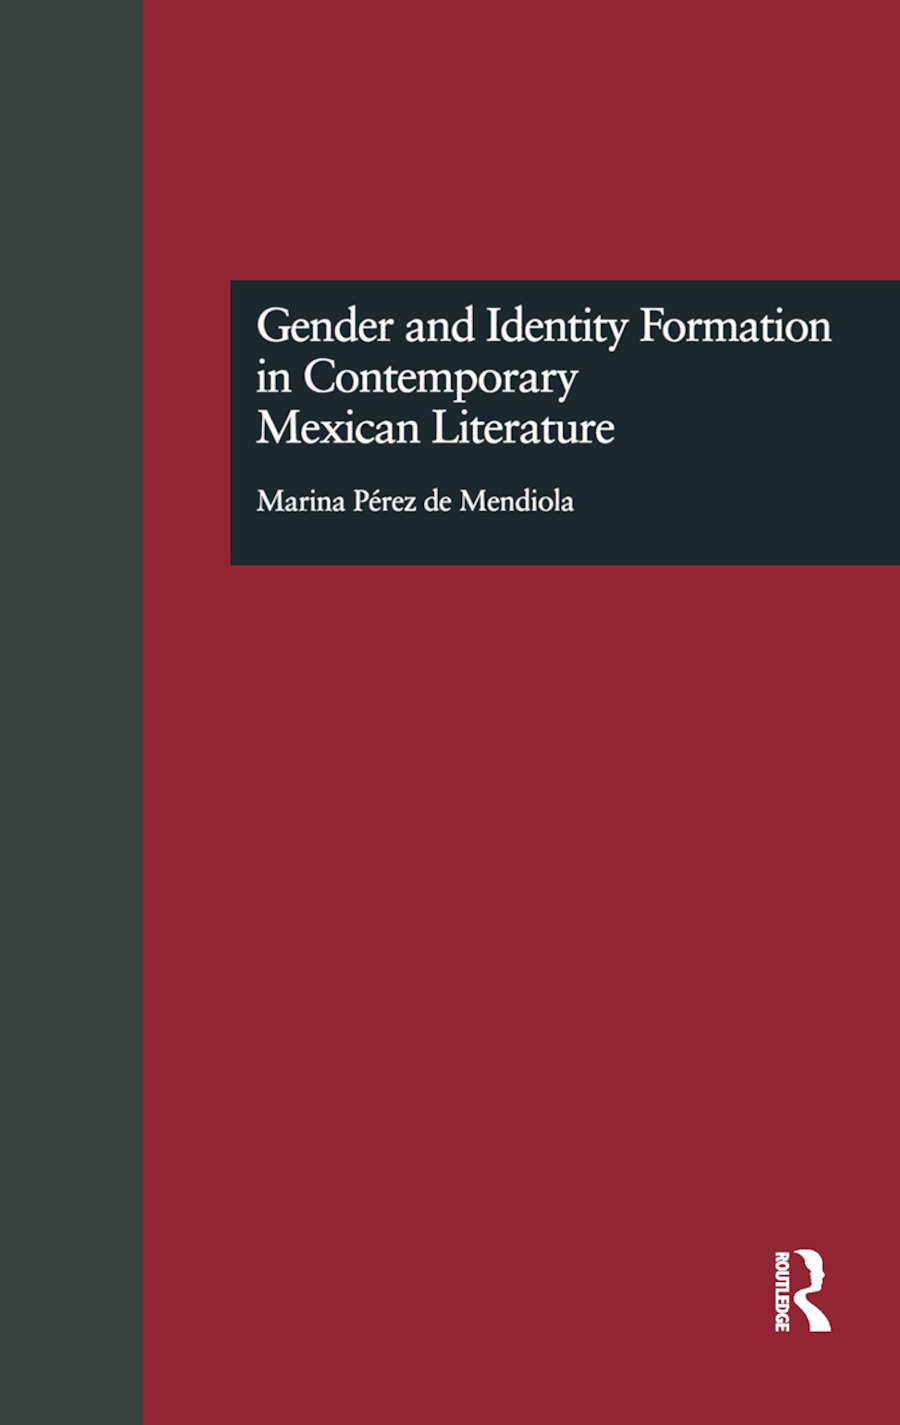 Gender and Identity Formation in Contemporary Mexican Literature book cover